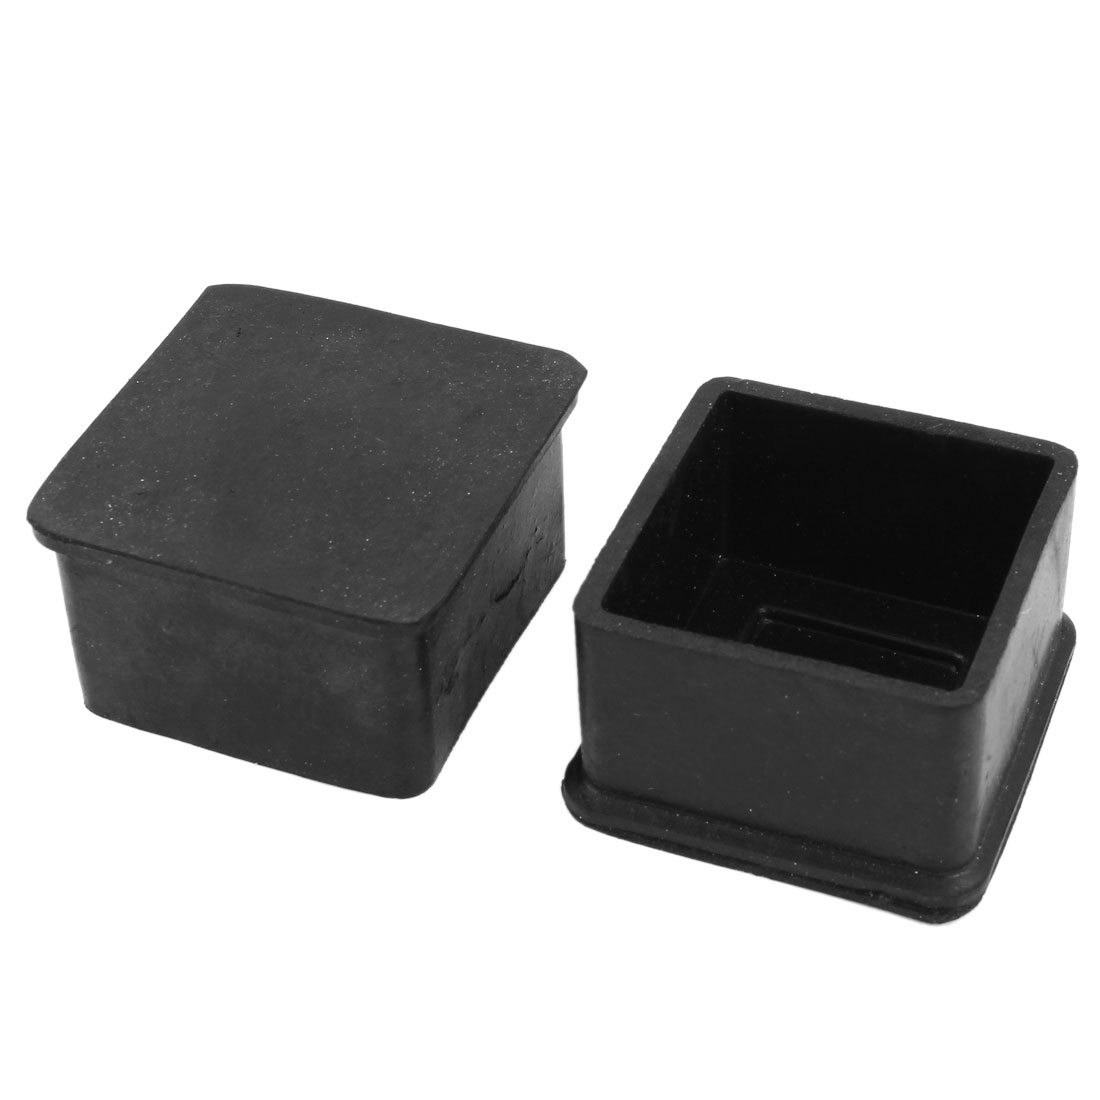 2 Pcs Squared Furniture Chair Table Foot Covers Protectors Black 48mm x 48mm